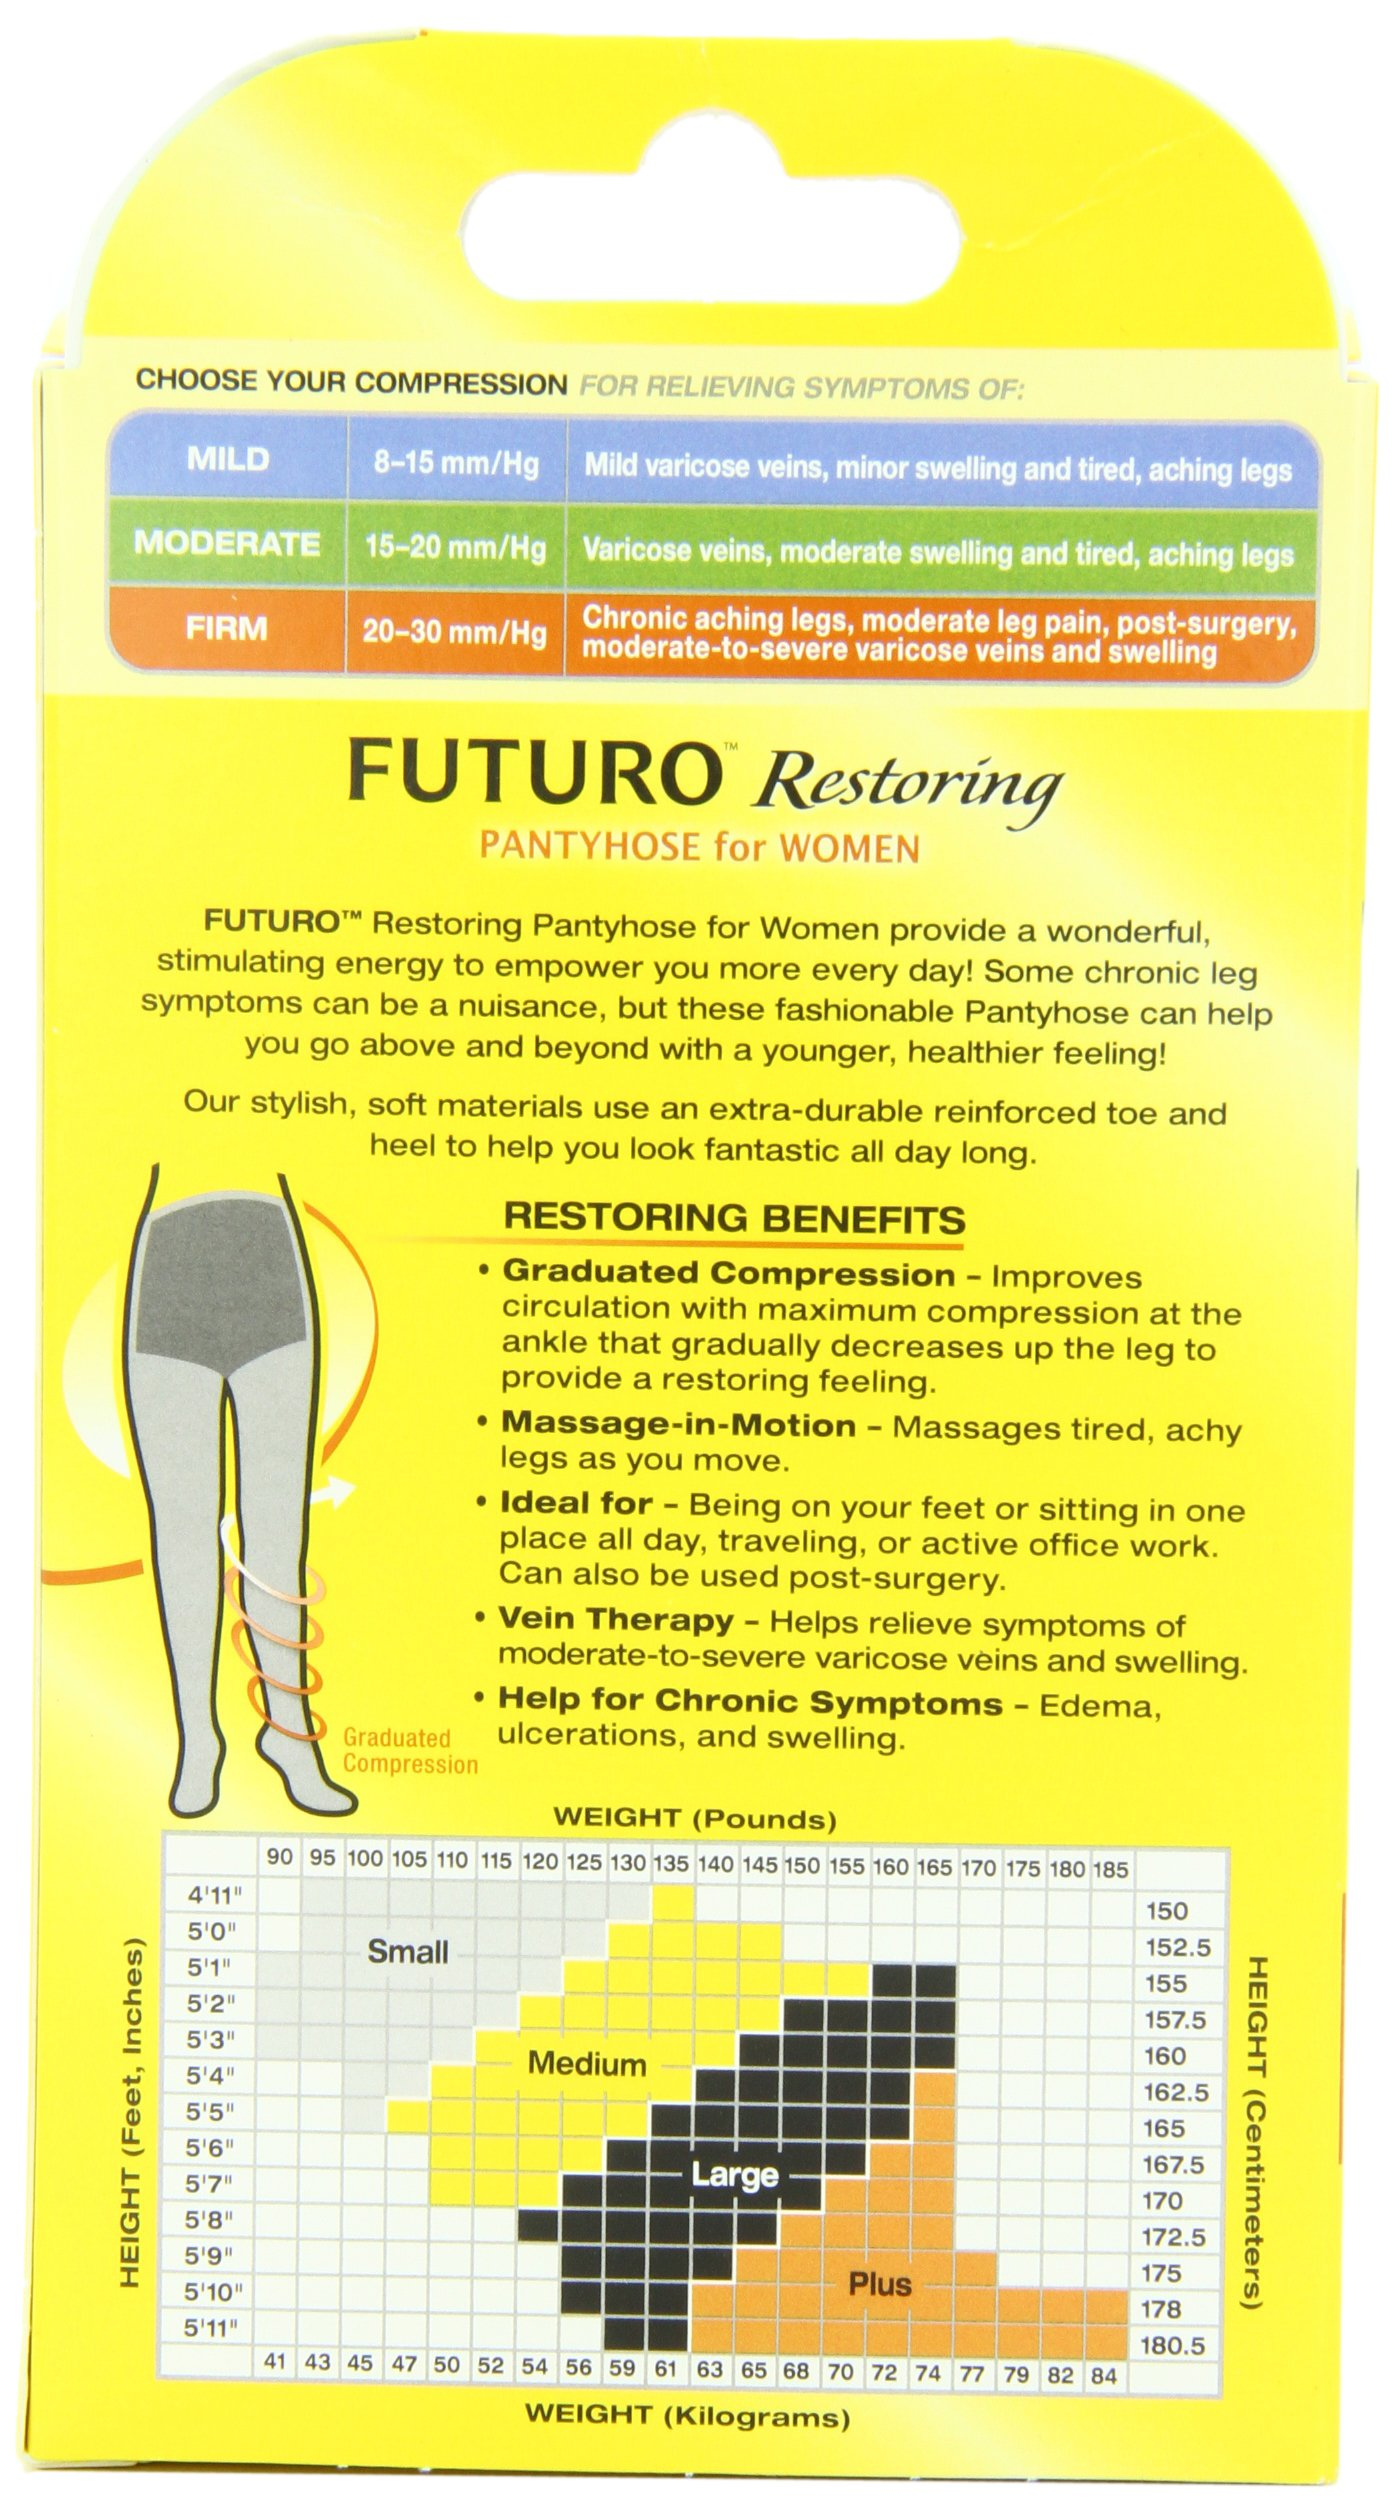 Futuro Restoring Pantyhose for Women, Helps Improve Circulation for Tired Legs, Eases Symptoms of Moderate-to-Severe Varicose Veins, Brief Cut, Large, Nude, Firm Compression by Futuro (Image #4)